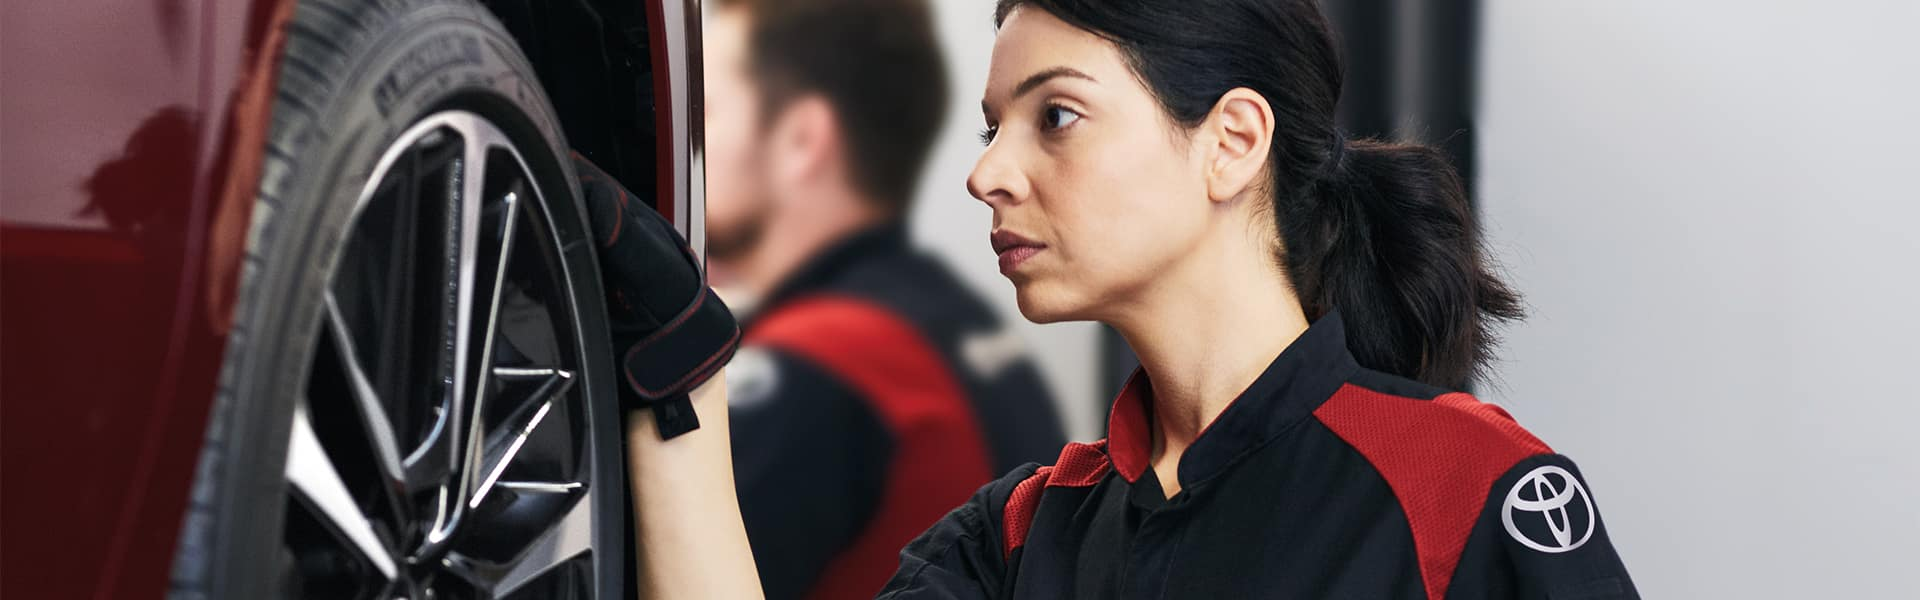 Lancaster Toyota is a Car Dealership in Lancaster near York PA   Toyota Service Advisor Working on Tire of a Toyota Vehicle